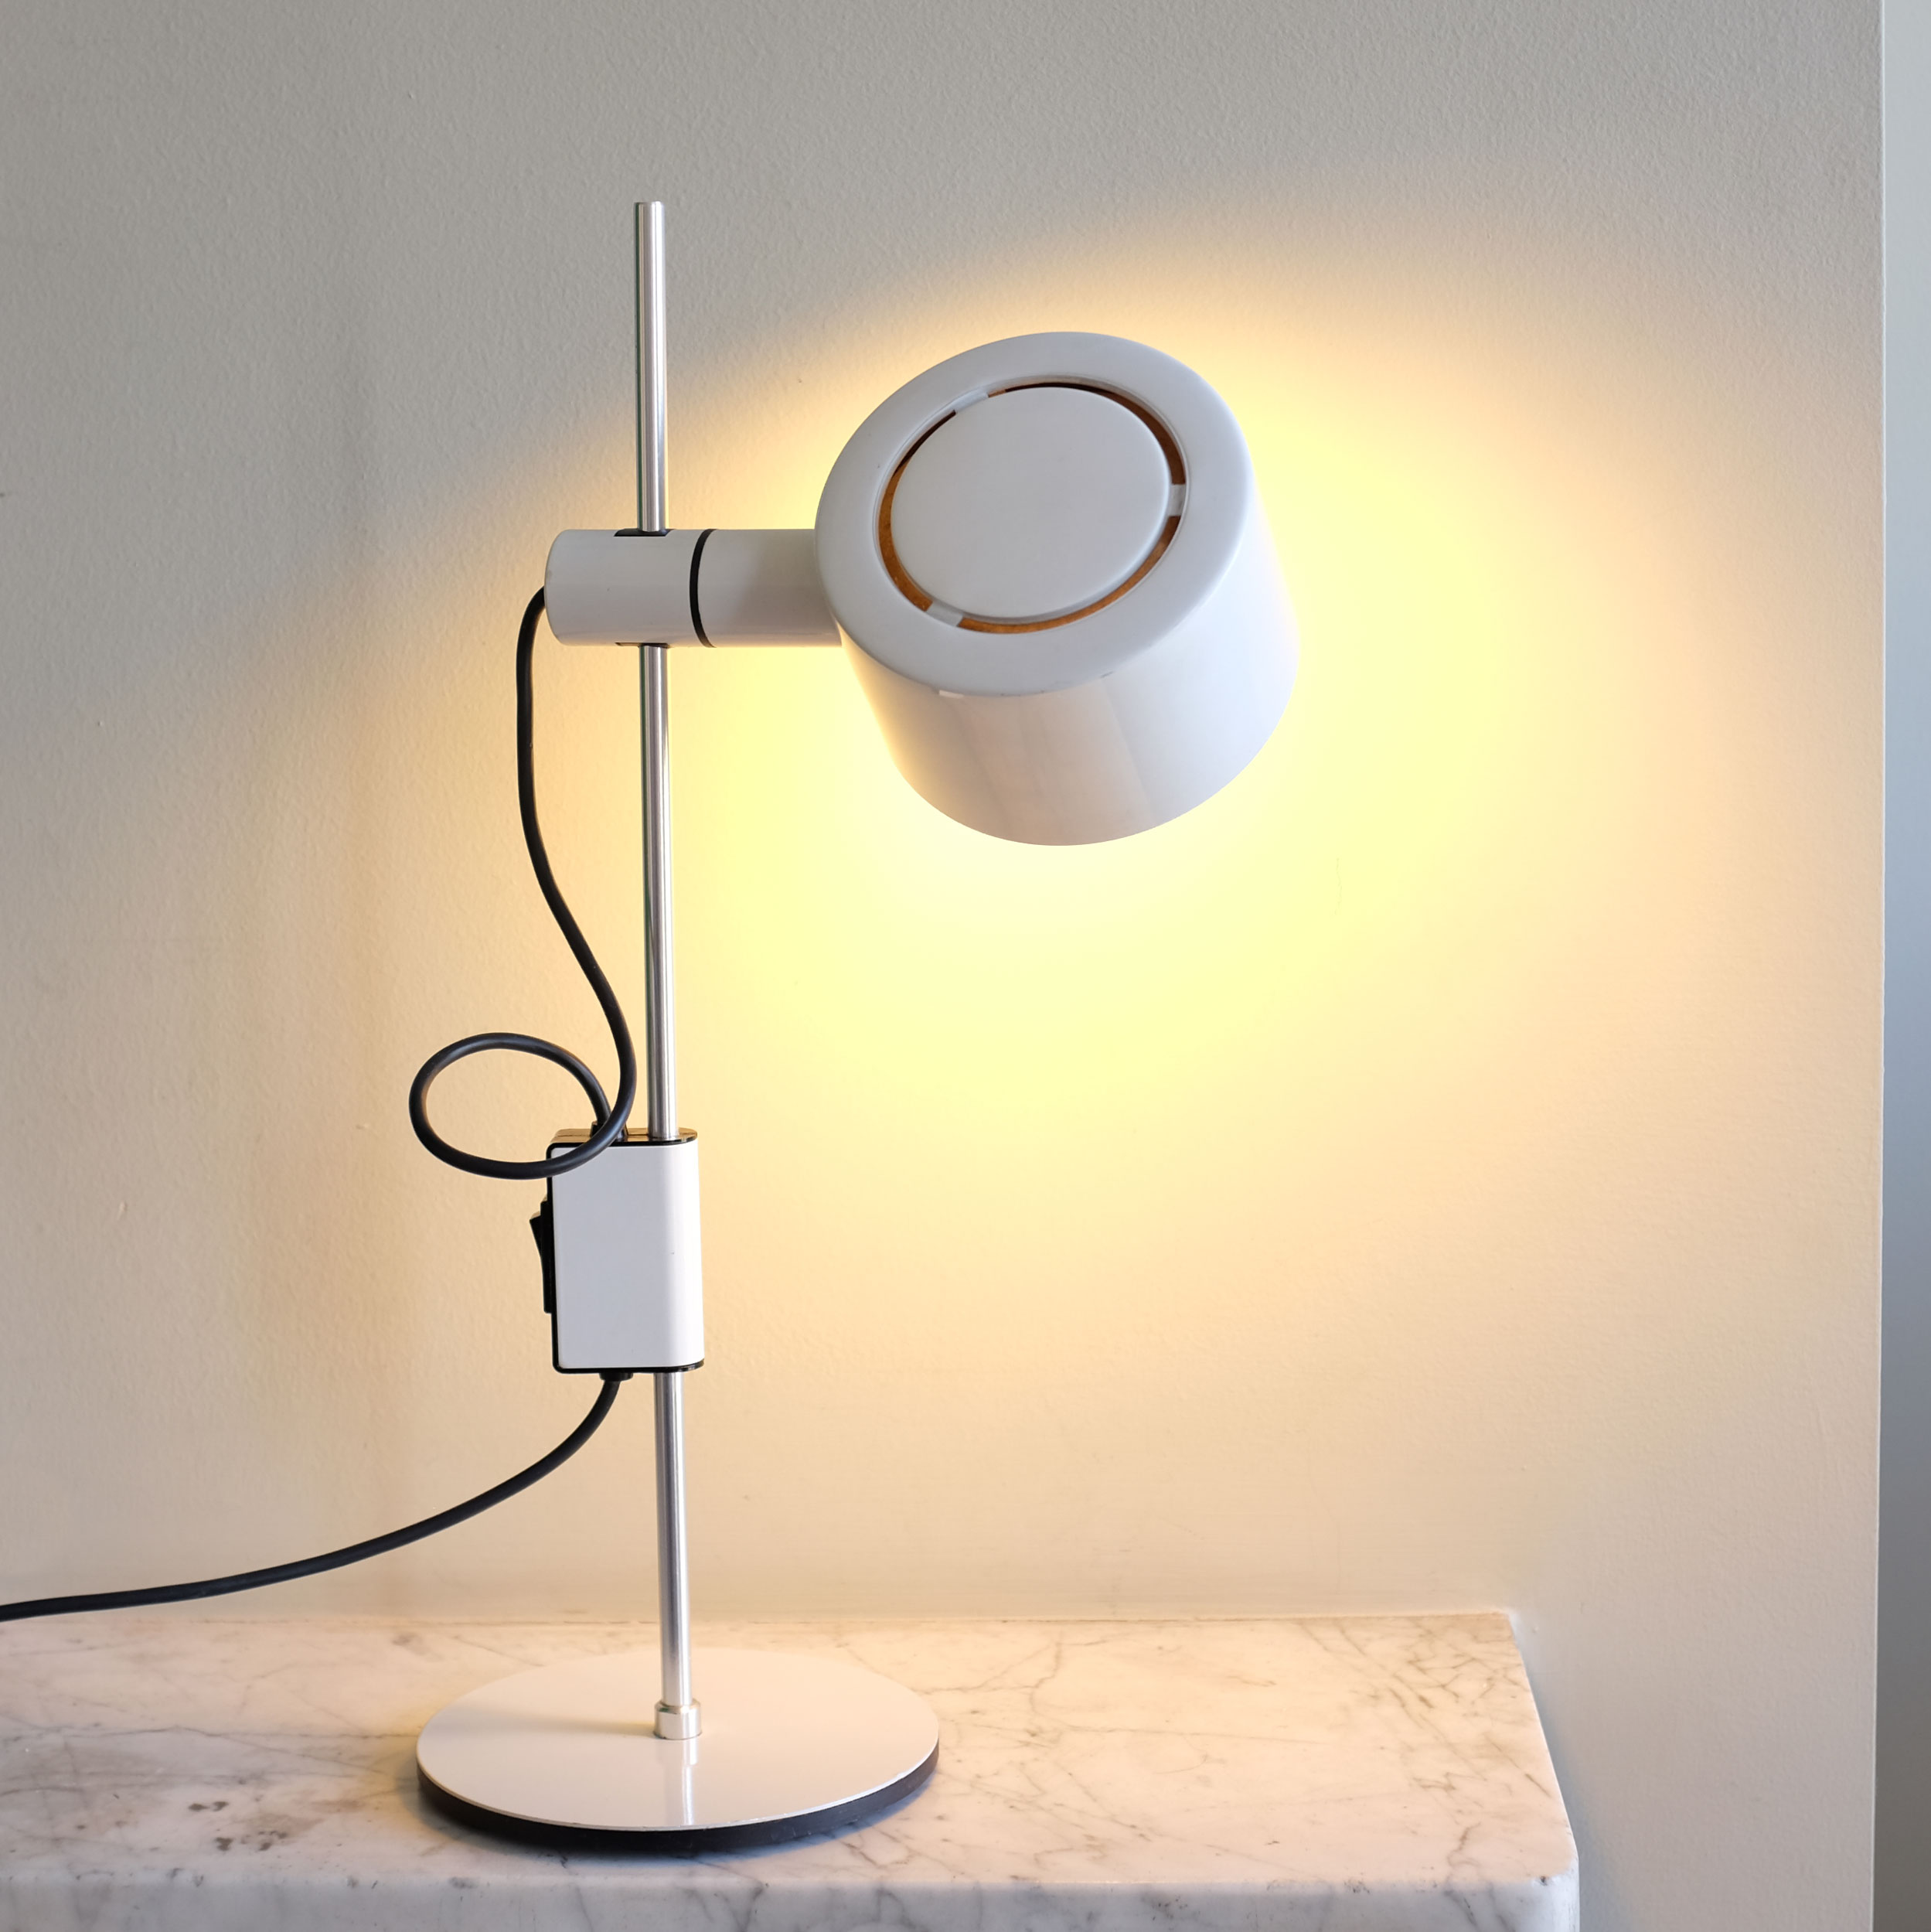 Vintage-Desk-Lamp-by-Ronald-Holmes-for-Conelight-v